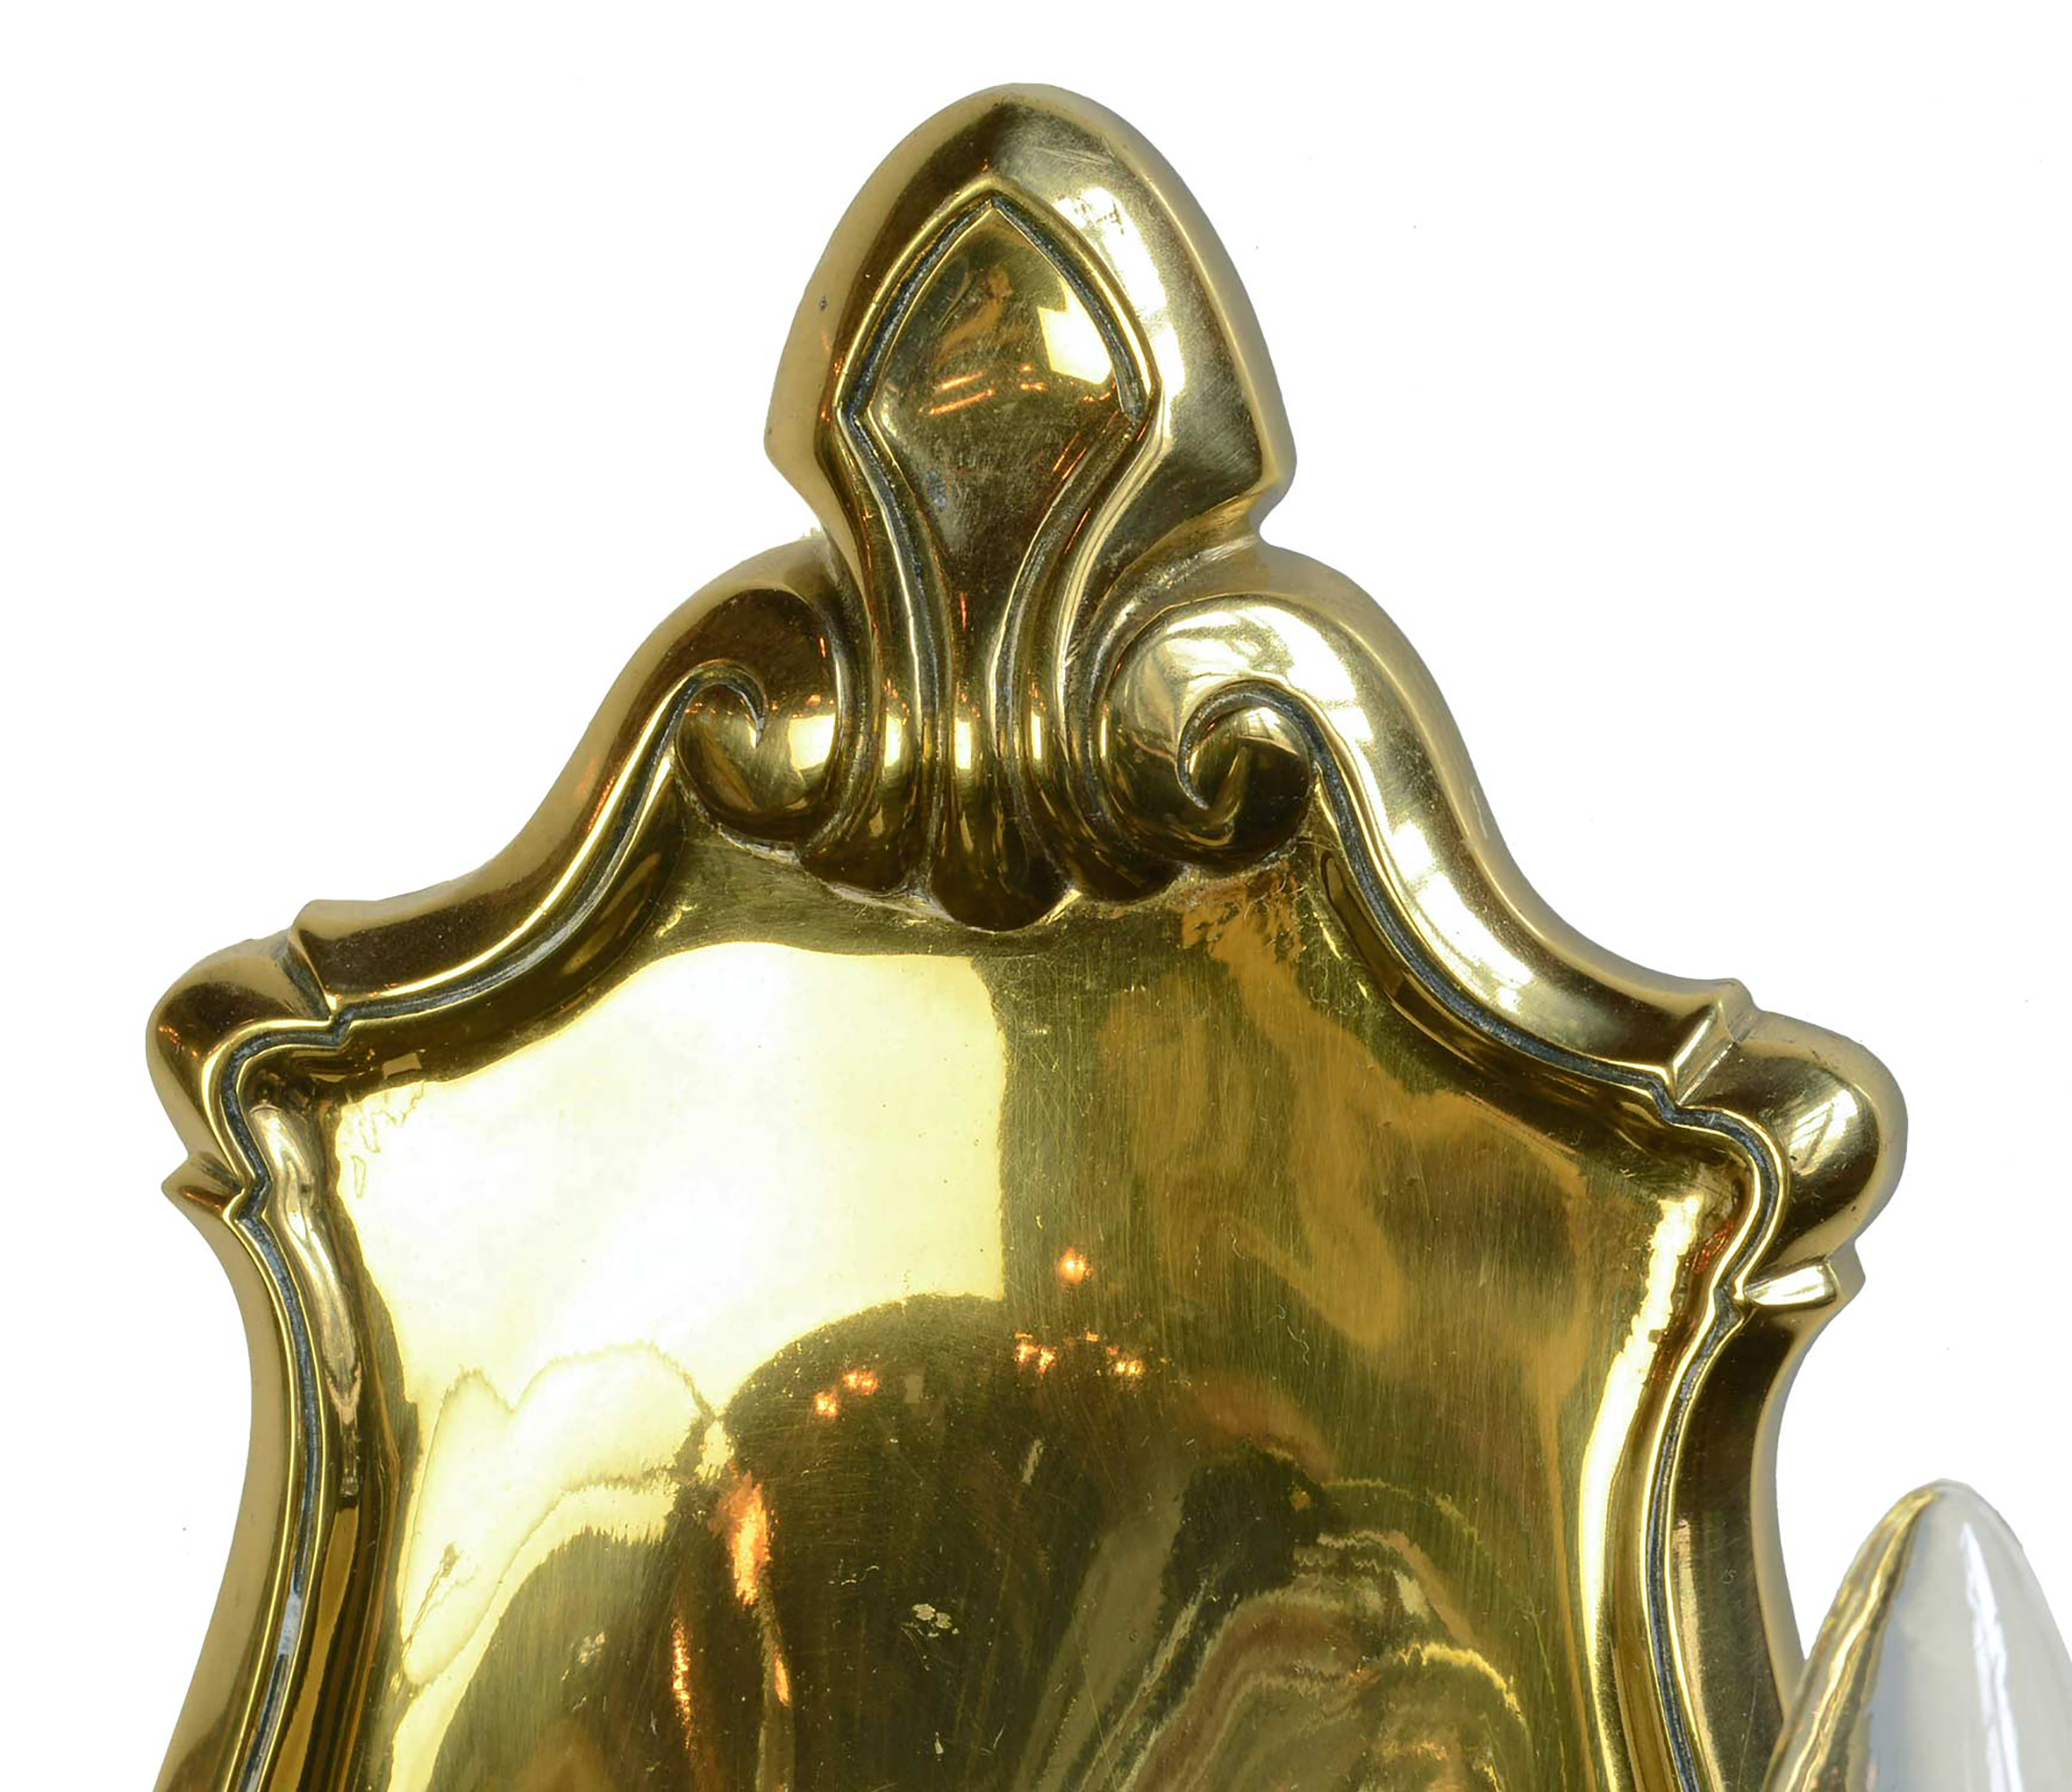 45844-bradley-hubbard-brass-two-candle-sconce-detail.jpg